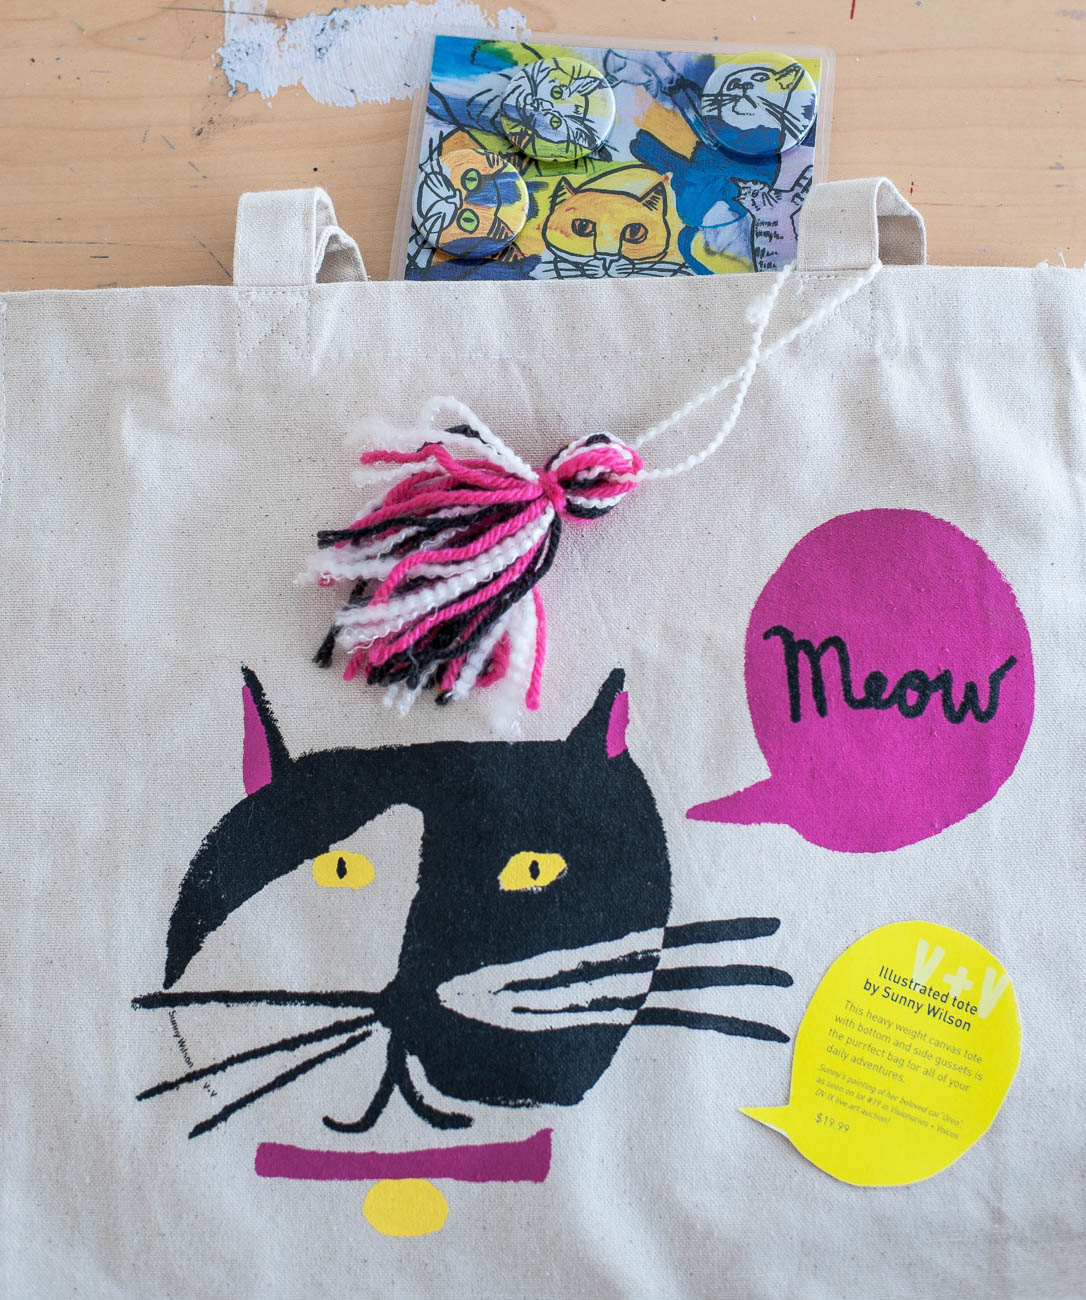 Illustrated tote bag with cat magnets{ }/ Image: Kellie Coleman // Published: 1.30.20